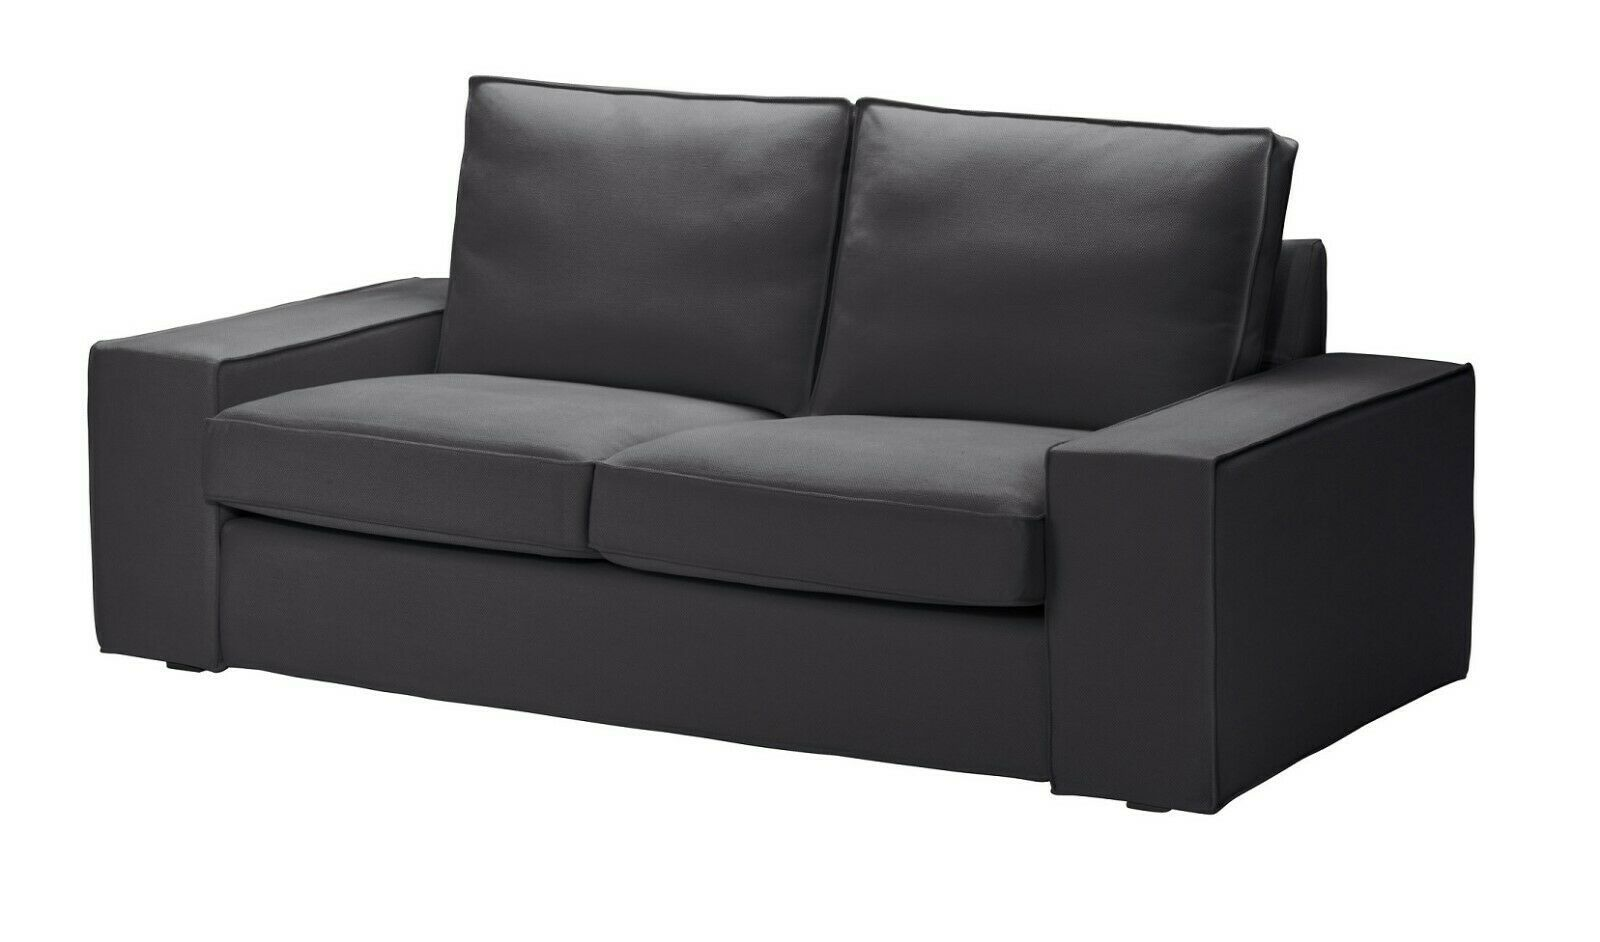 Ikea Kivik Two Seat Sofa Cover Dansbo Dark Gray Ikea Loveseat Slipcover New Ikea Sofa Ideas Of Ikea In 2020 Ikea Vimle Sofa Ektorp Sofa Cover Sofa Bed With Chaise